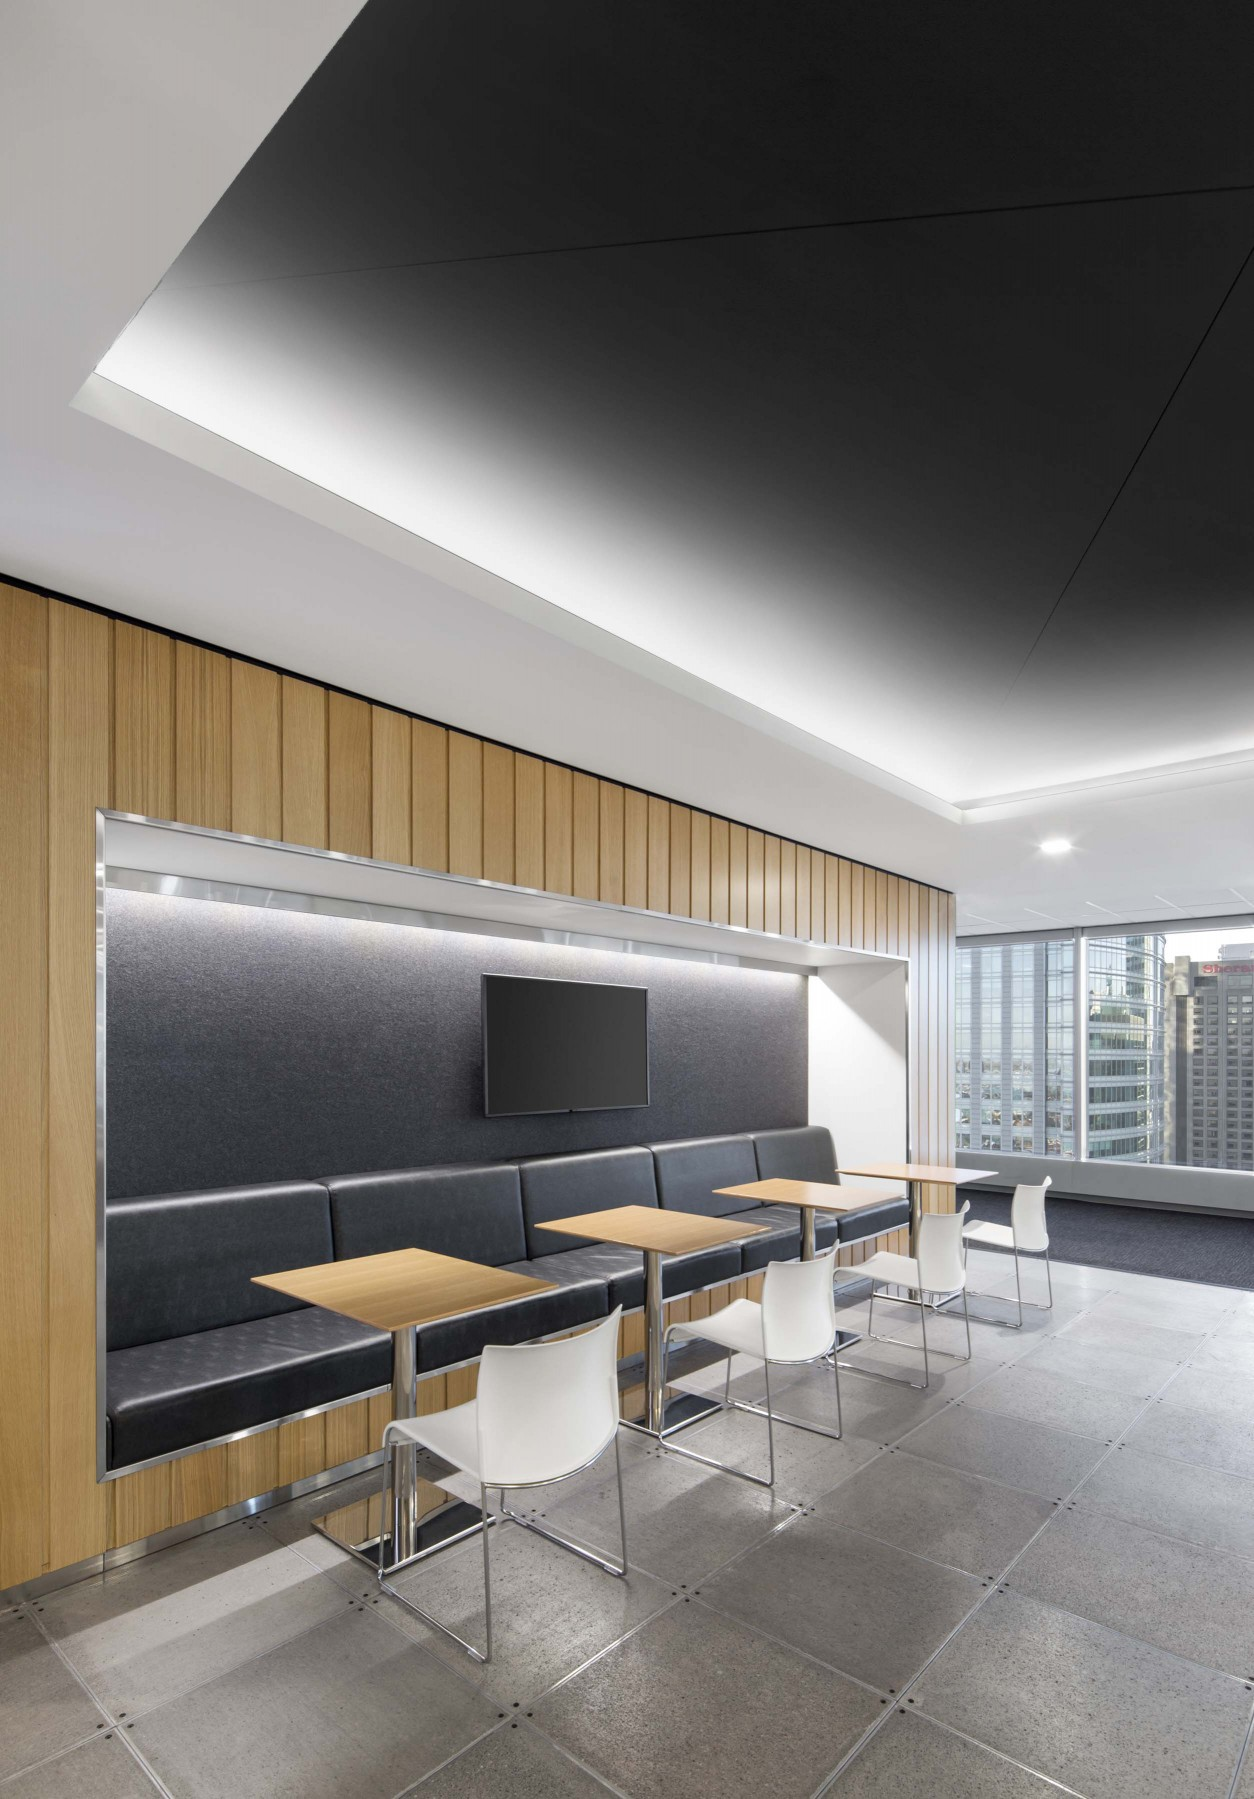 The thorough uniformity that the Lumenpulse luminaires provided eliminated any hot and cold areas by keeping a consistent warmth throughout the large main space, as well as within the closed spaces. – Stéphane Brugger